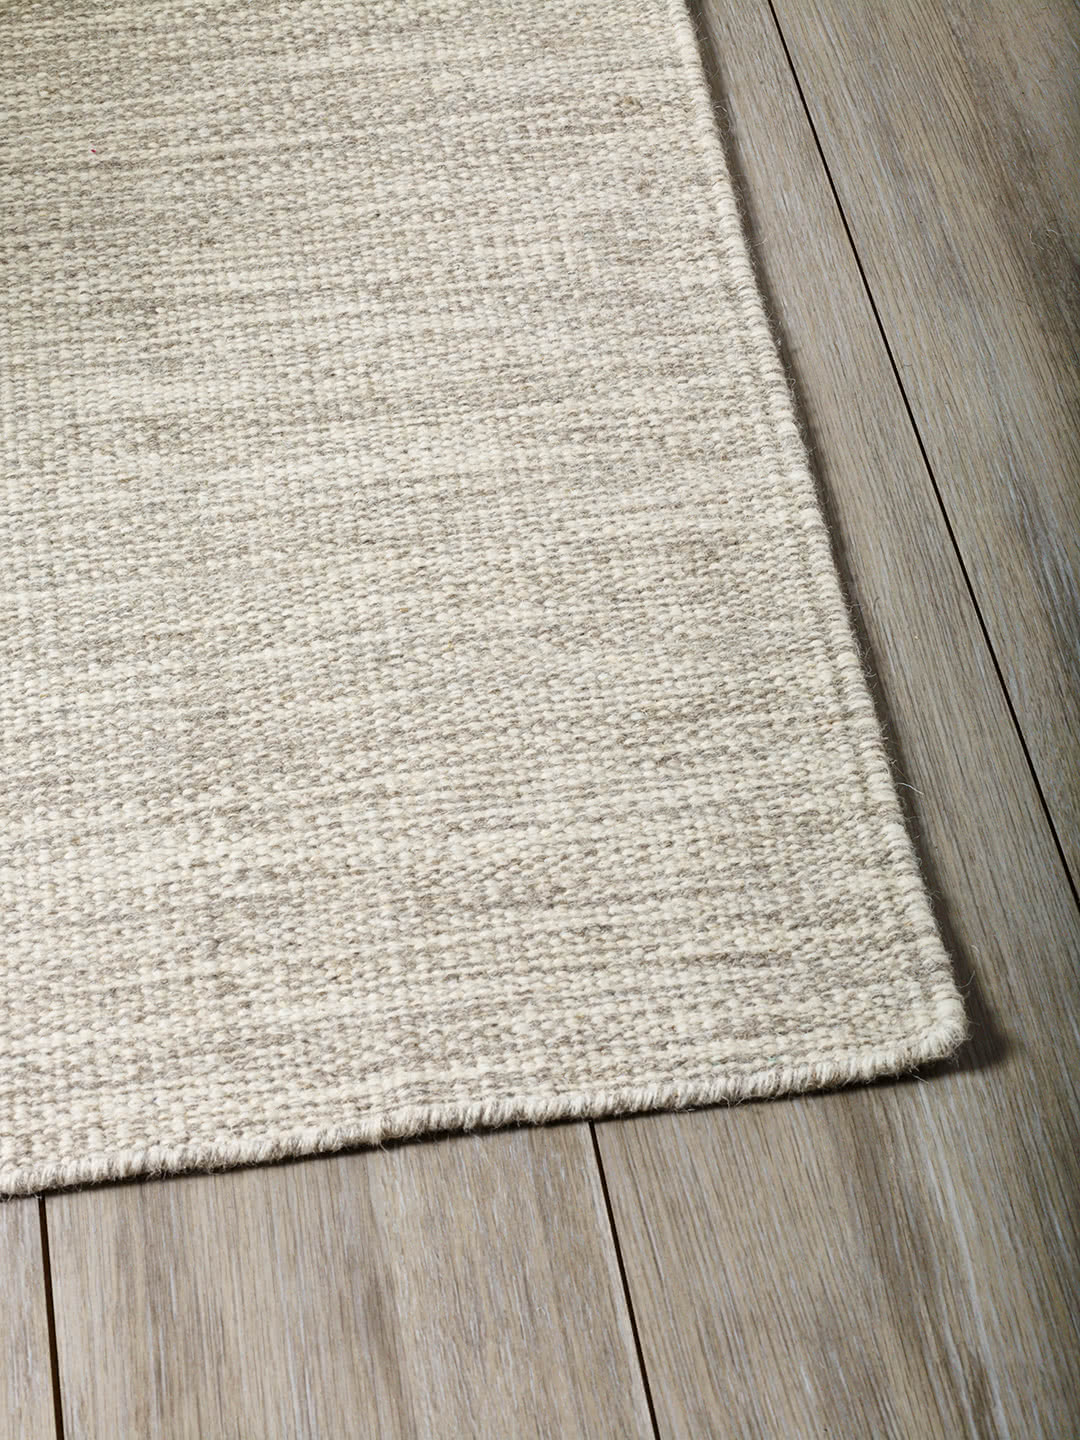 Beige pure wool rugs Perth